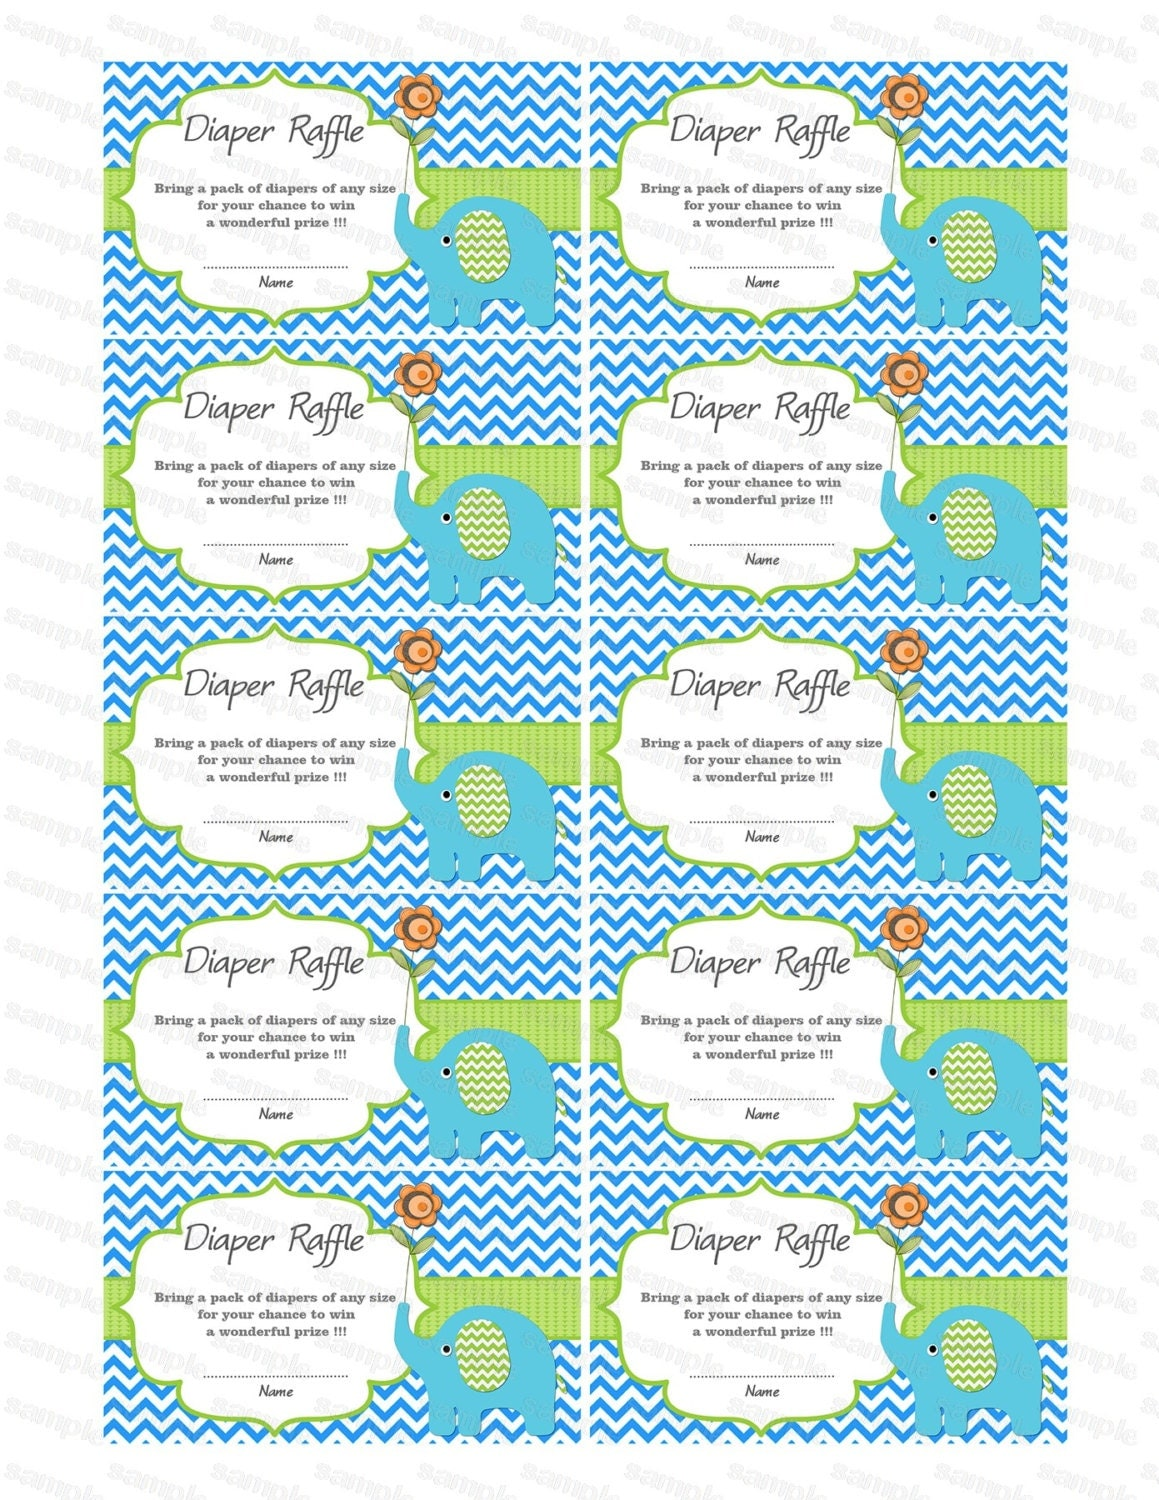 Printable Diaper Raffle Ticket Template for Pinterest